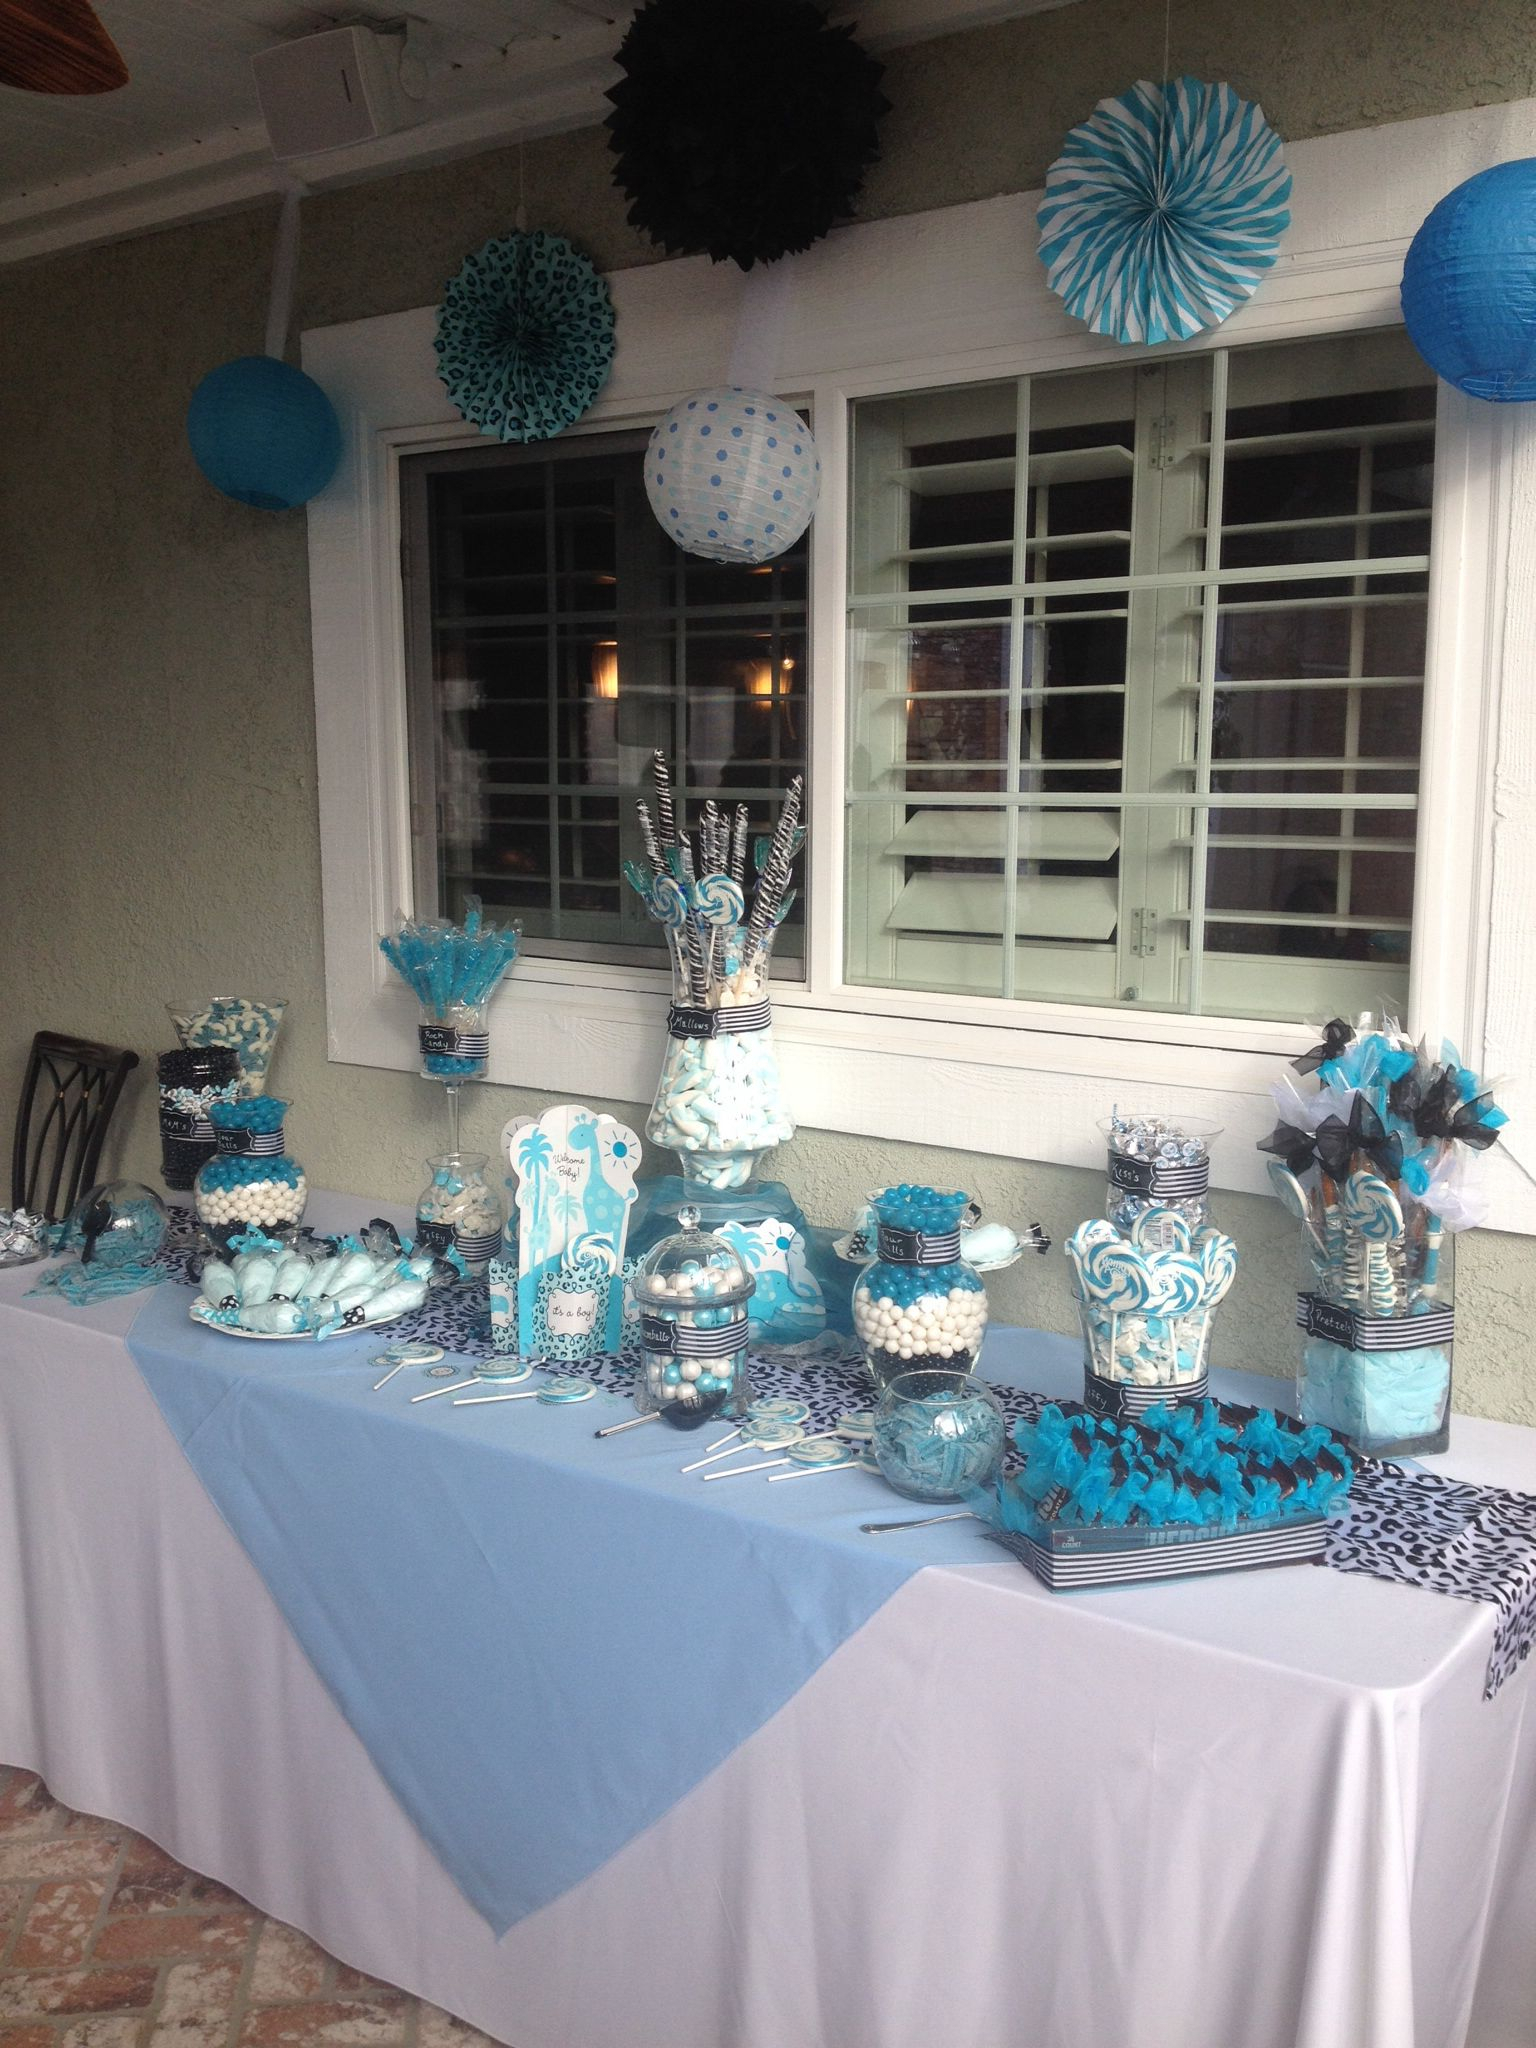 10 Beautiful Blue And White Baby Shower Ideas blue black and white baby shower candy table baby showers in 2020